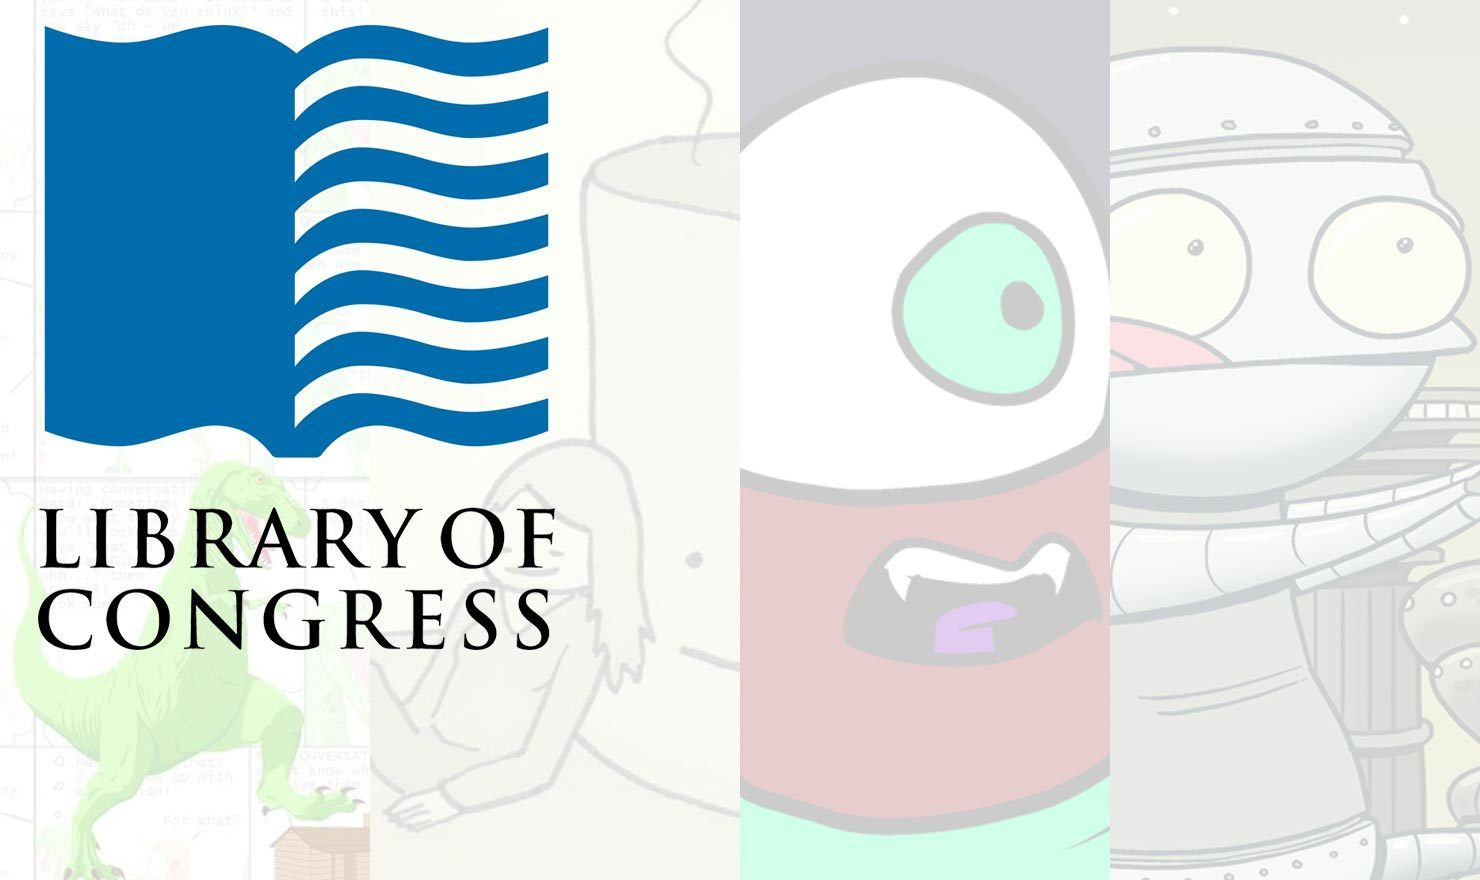 GC Series Included In New Library Of Congress Webcomics Archive